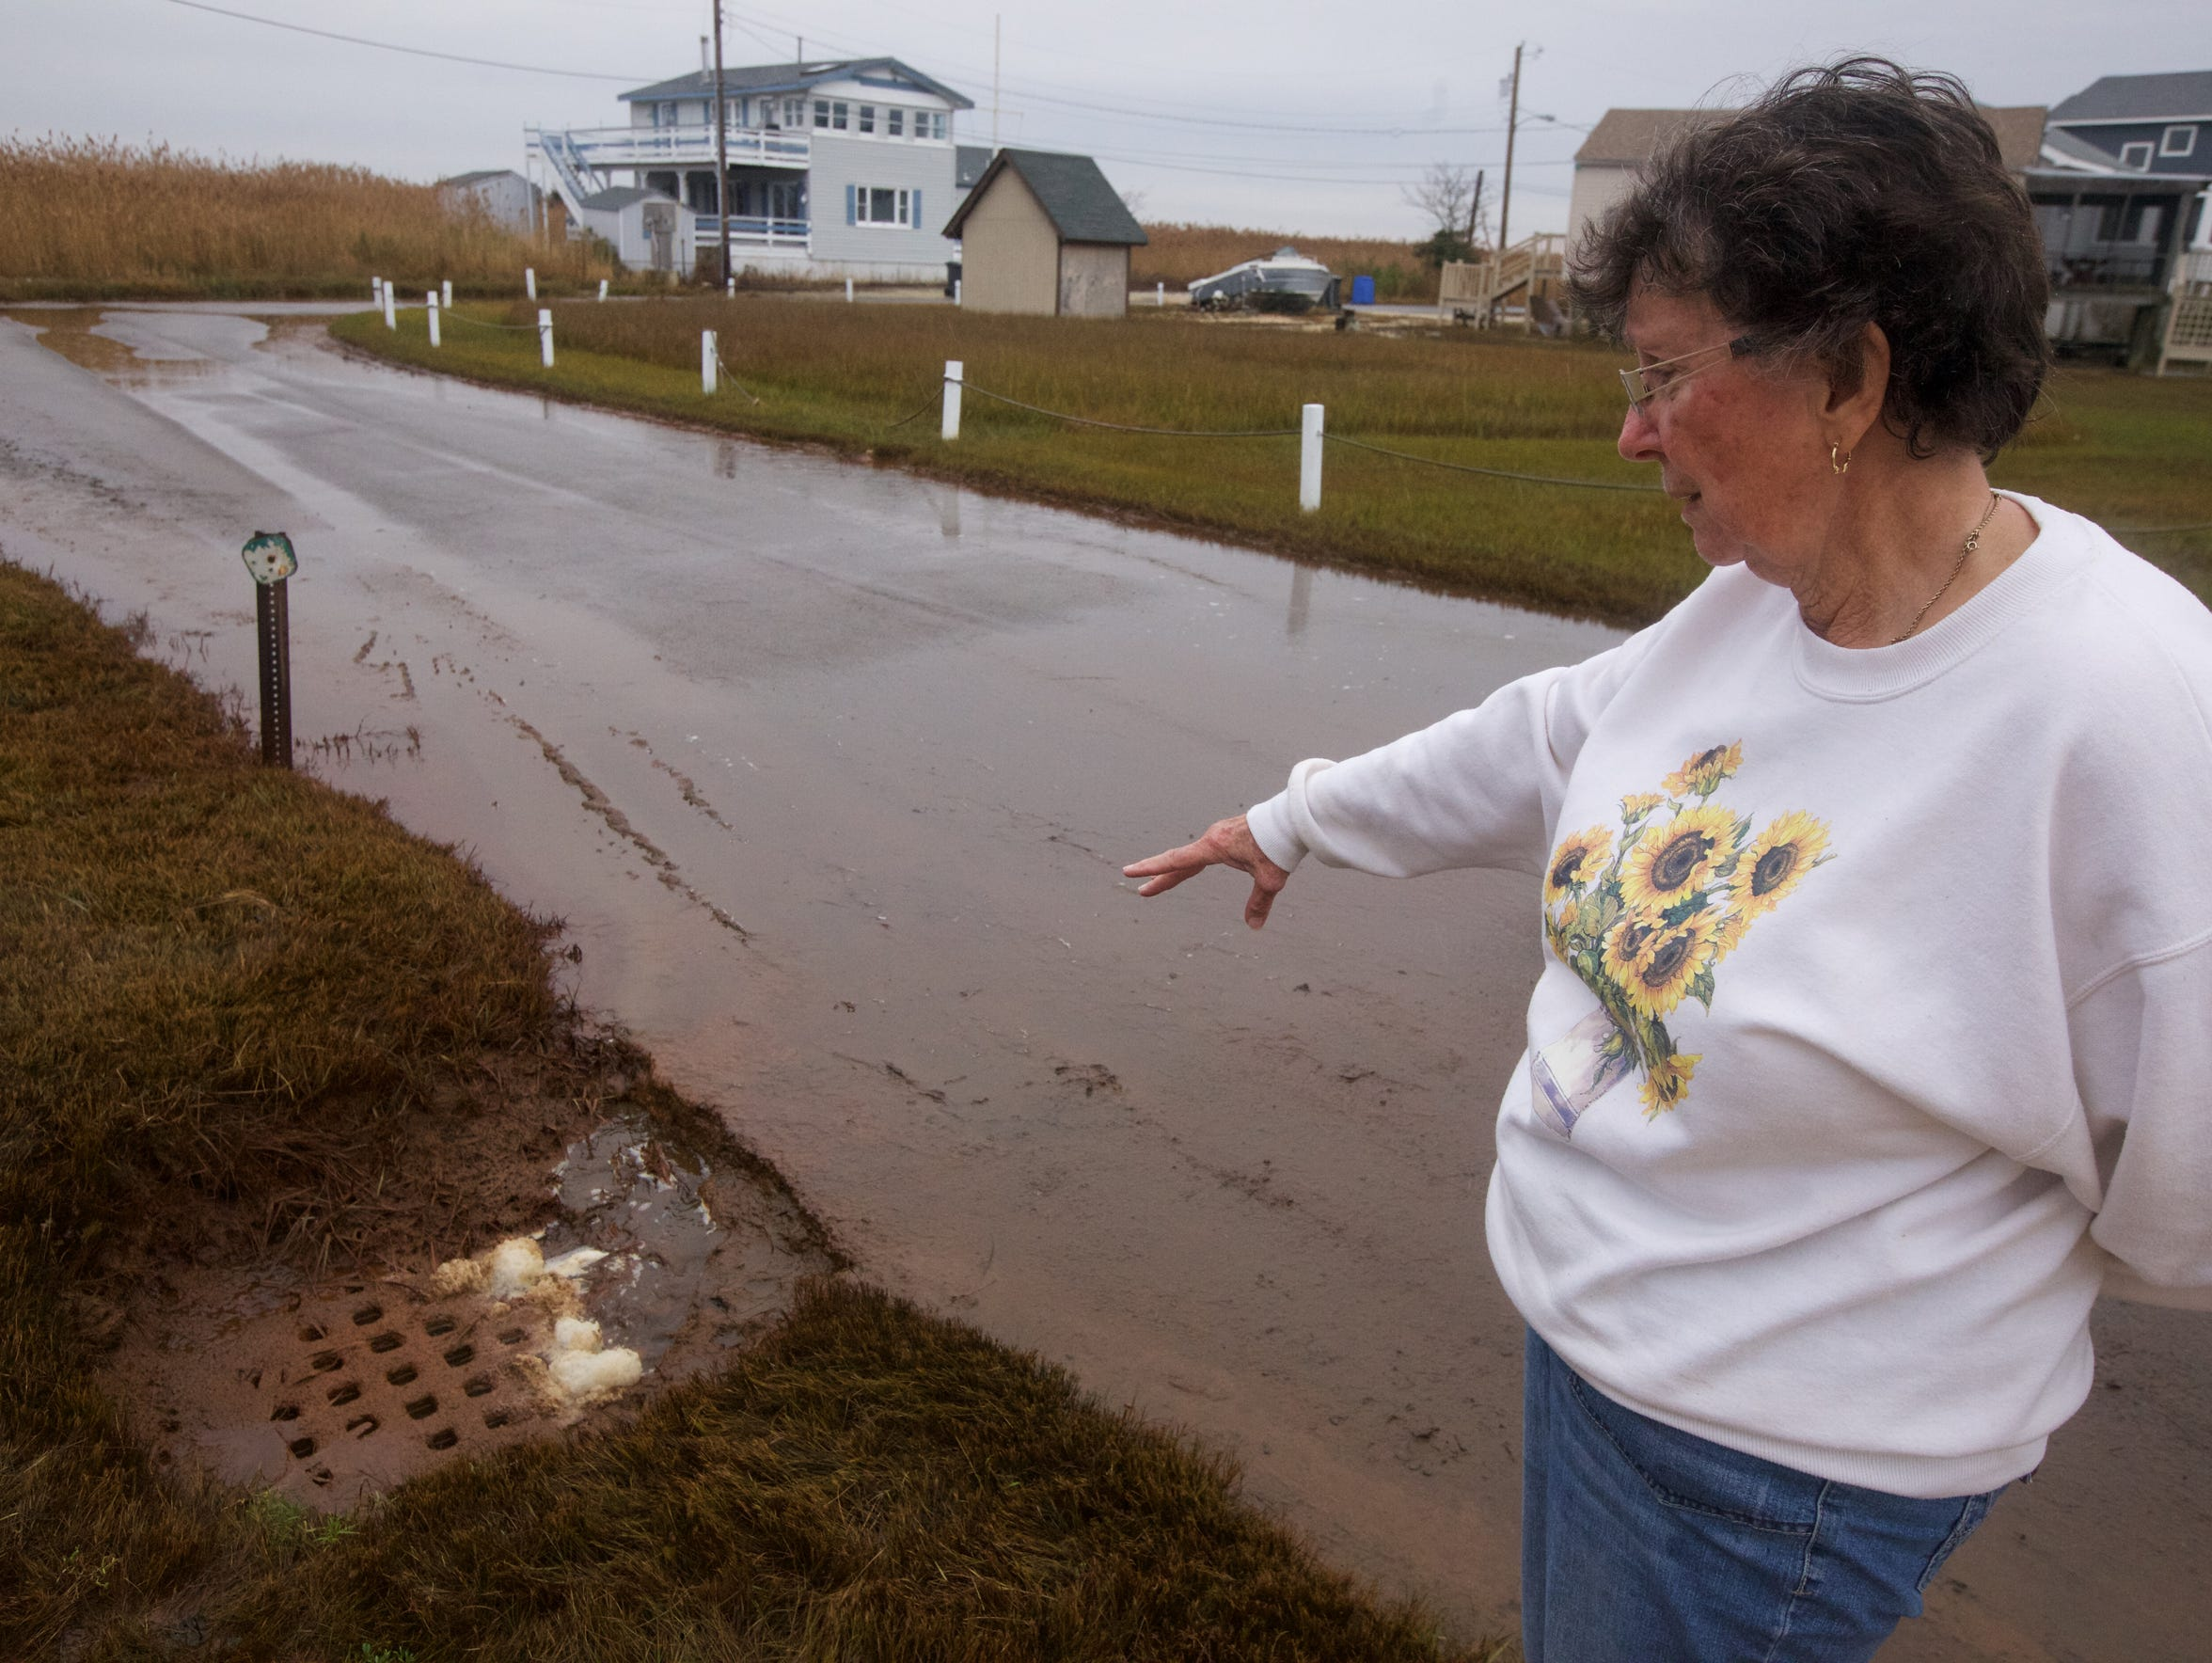 Maryann O'Neill points out a storm drain in front of